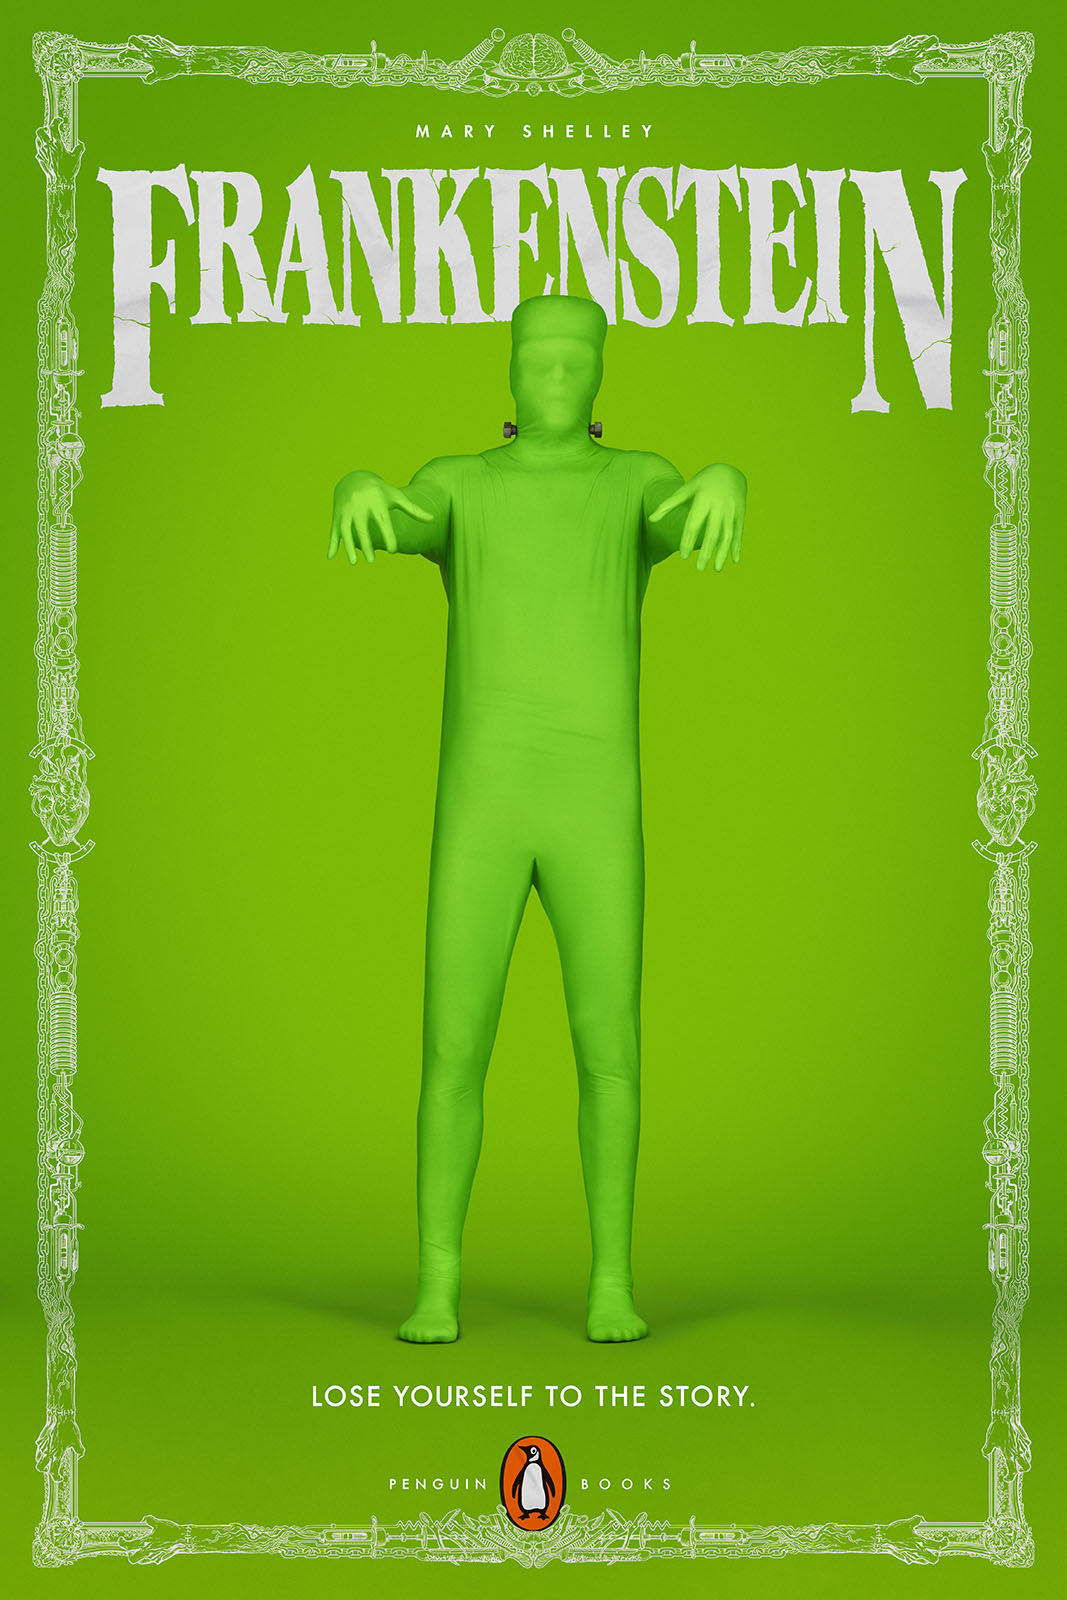 penguin-books-chroma-key-macacolandia-frankenstein